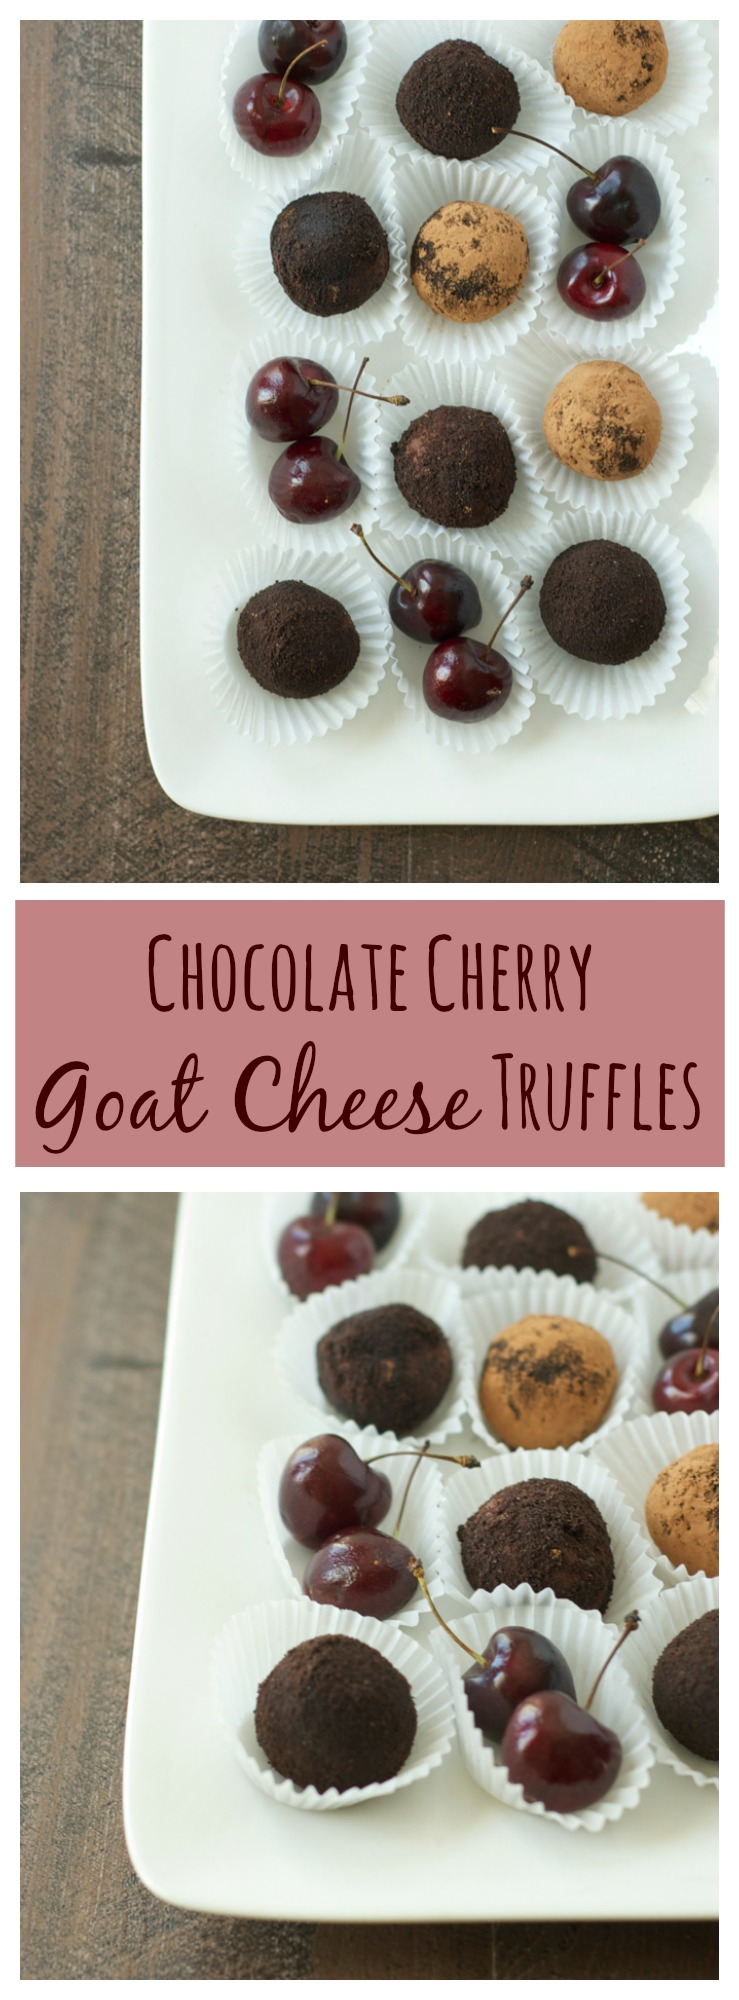 These luscious truffles have only four simple ingredients! Gluten-free and only 60 calories each. Go ahead, treat yourself!